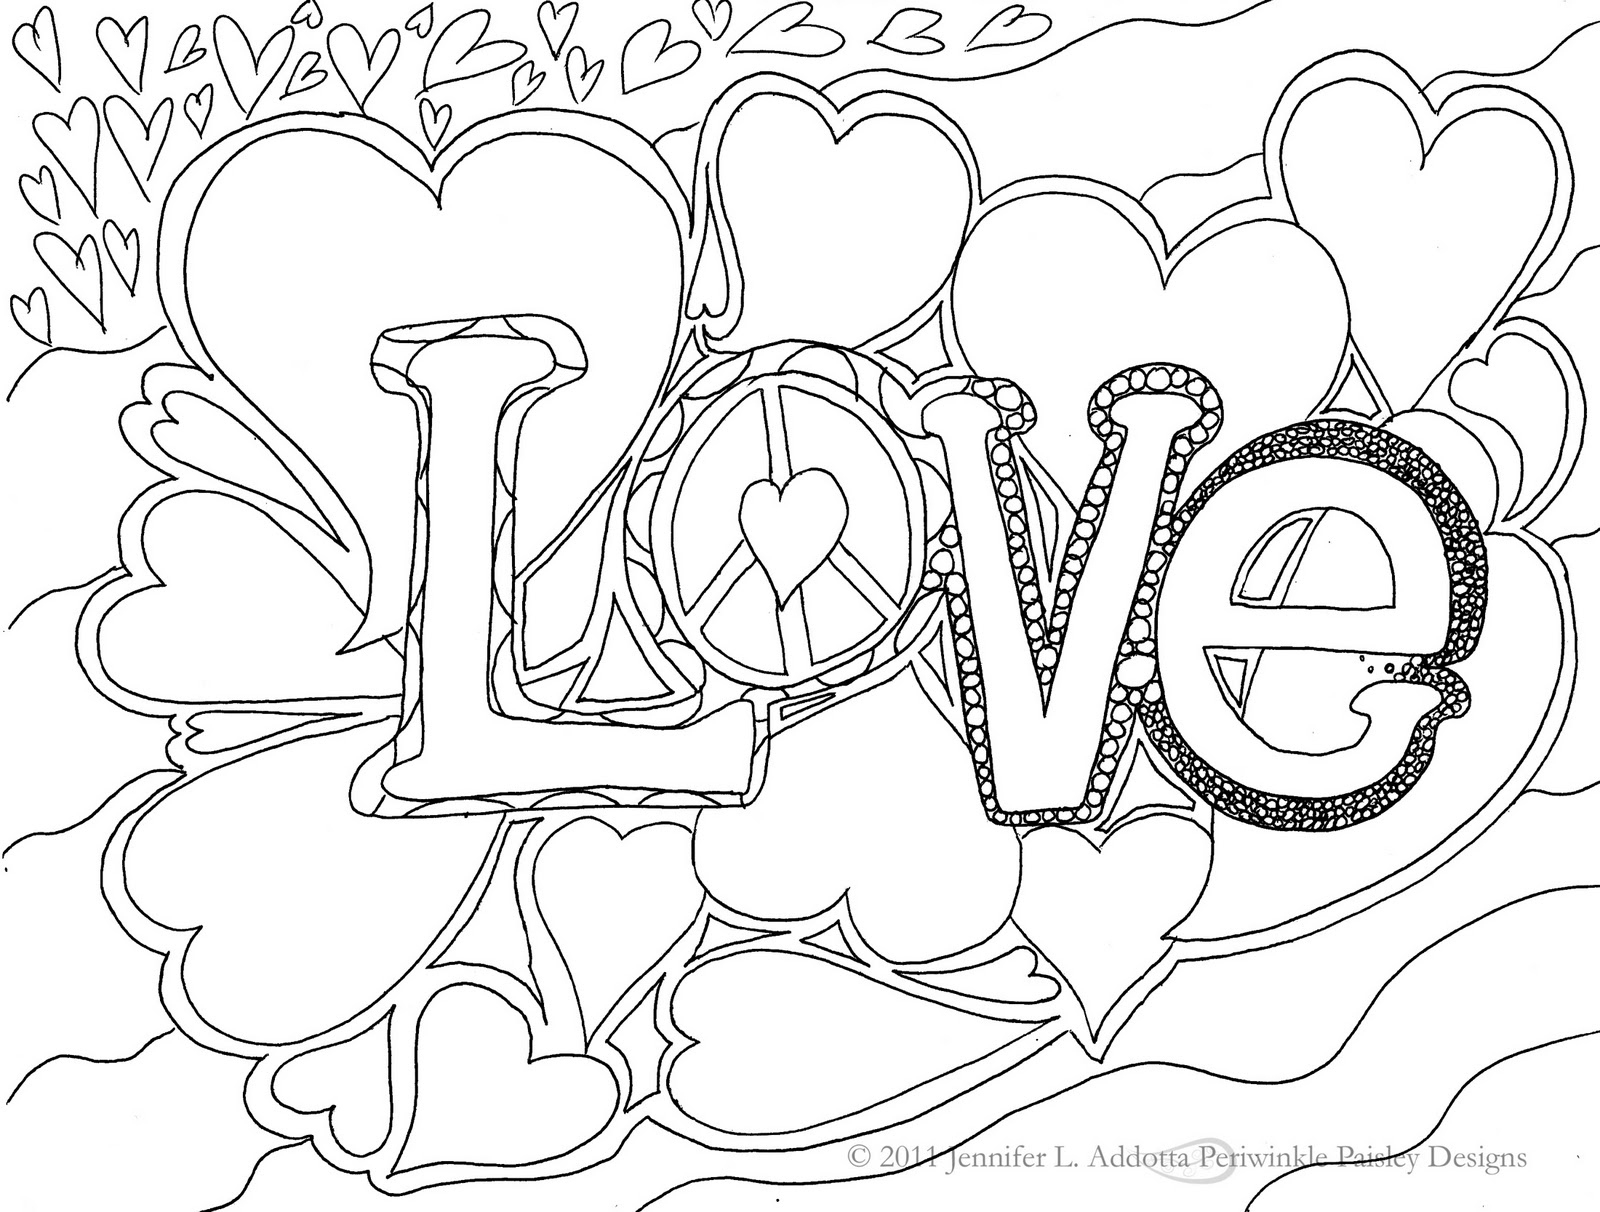 guess how much i love you coloring pages guess how much i love you coloring pages free coloring pages how coloring love you much i pages guess